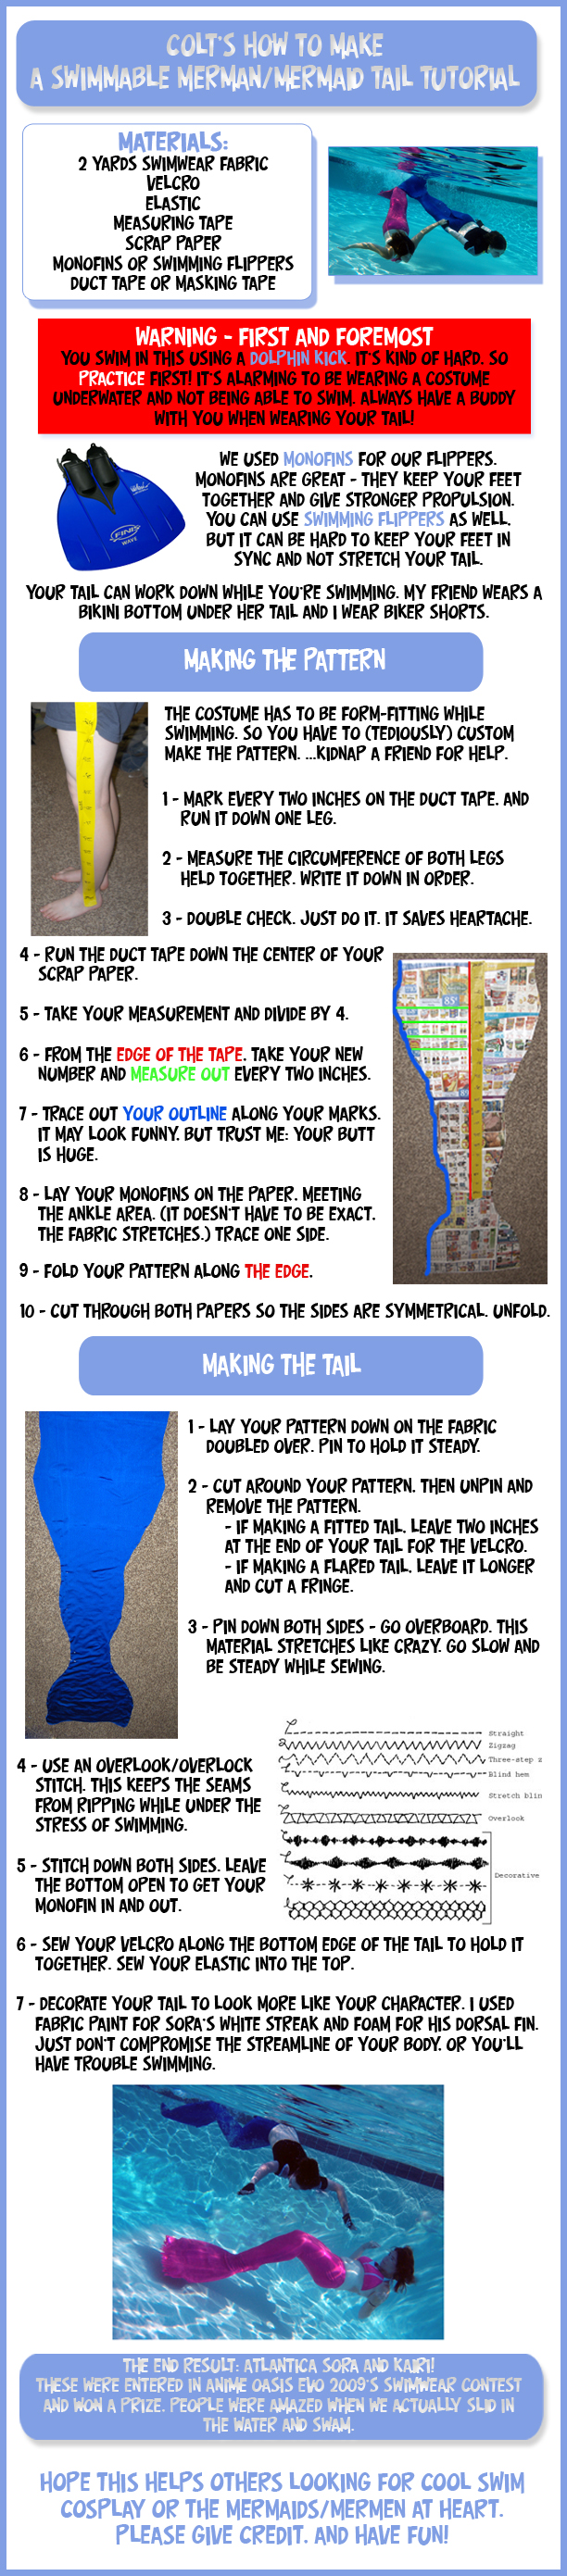 How-to: Swimmable mermaid tail